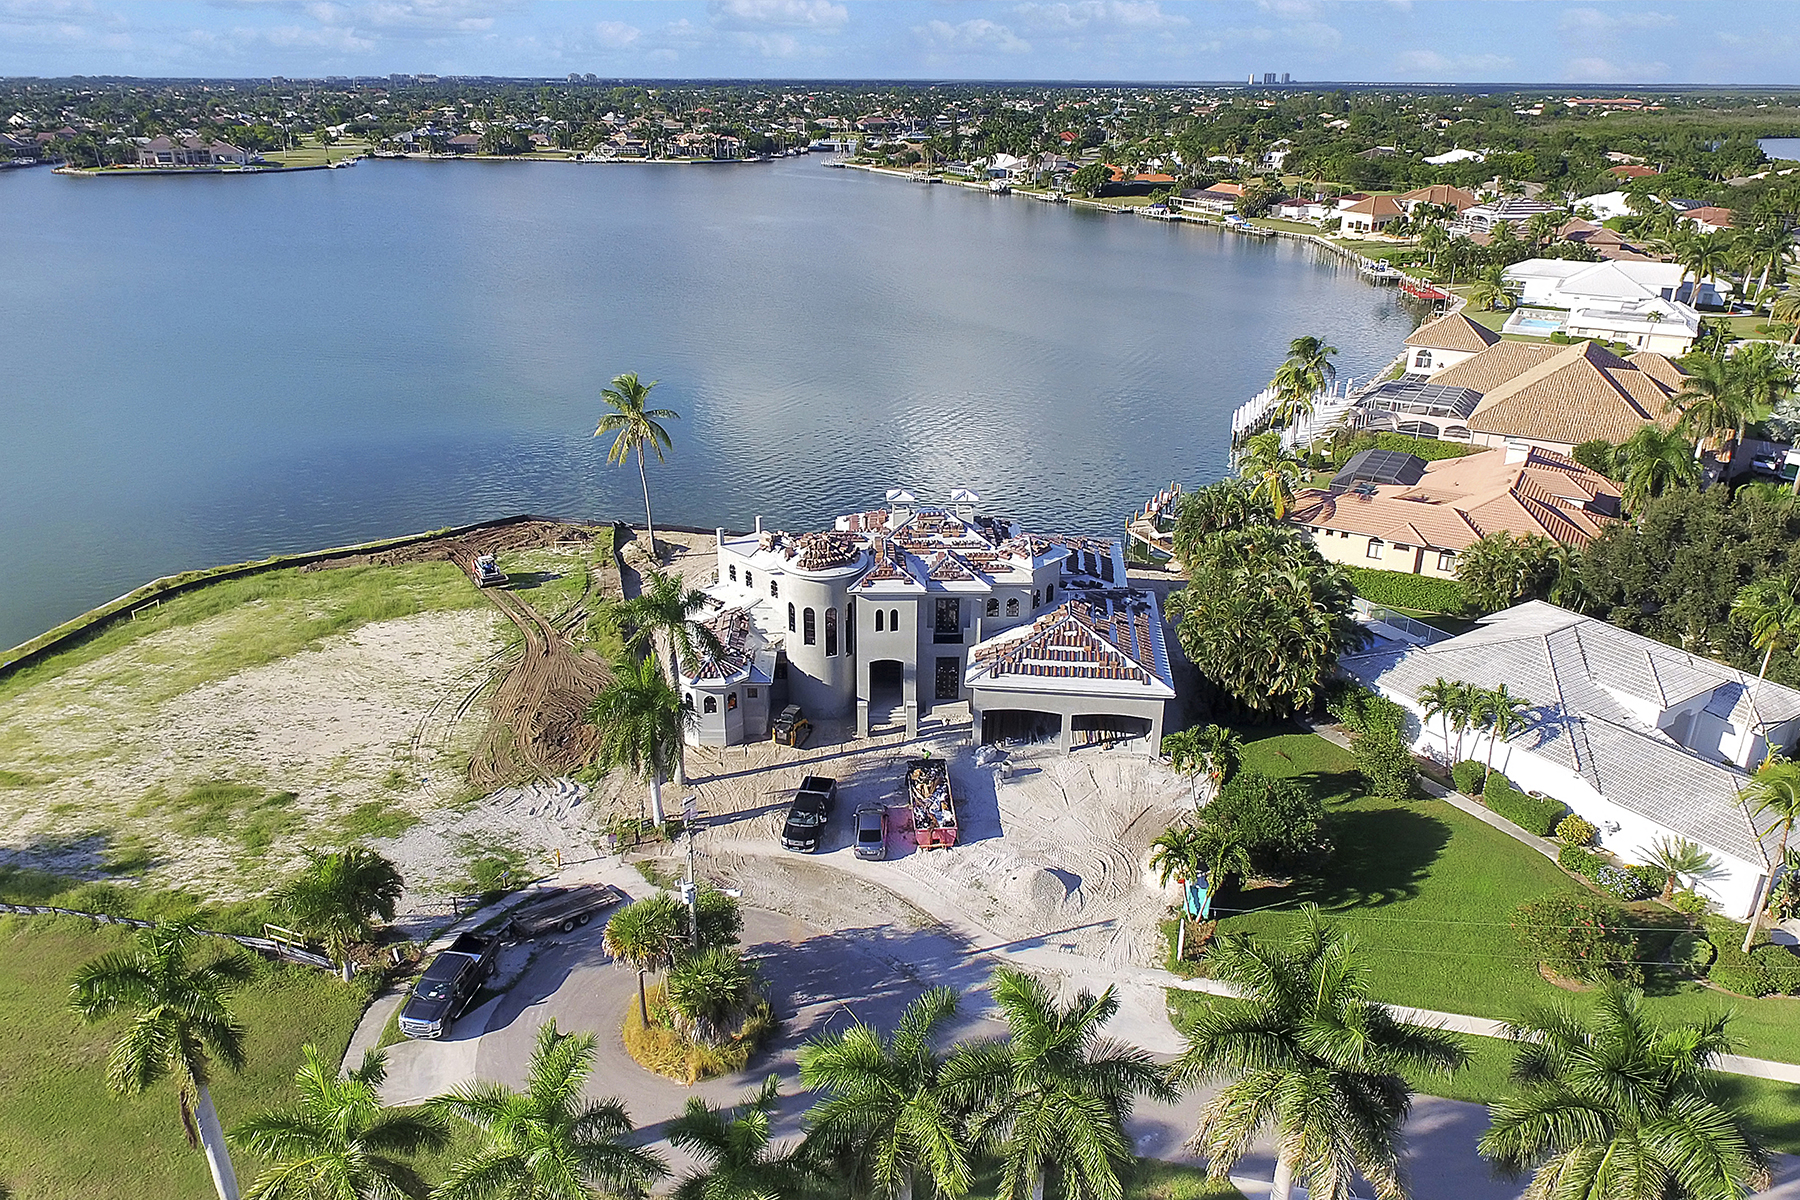 Single Family Home for Sale at MARCO ISLAND - DEVON COURT 1780 Devon Ct Marco Island, Florida, 34145 United States